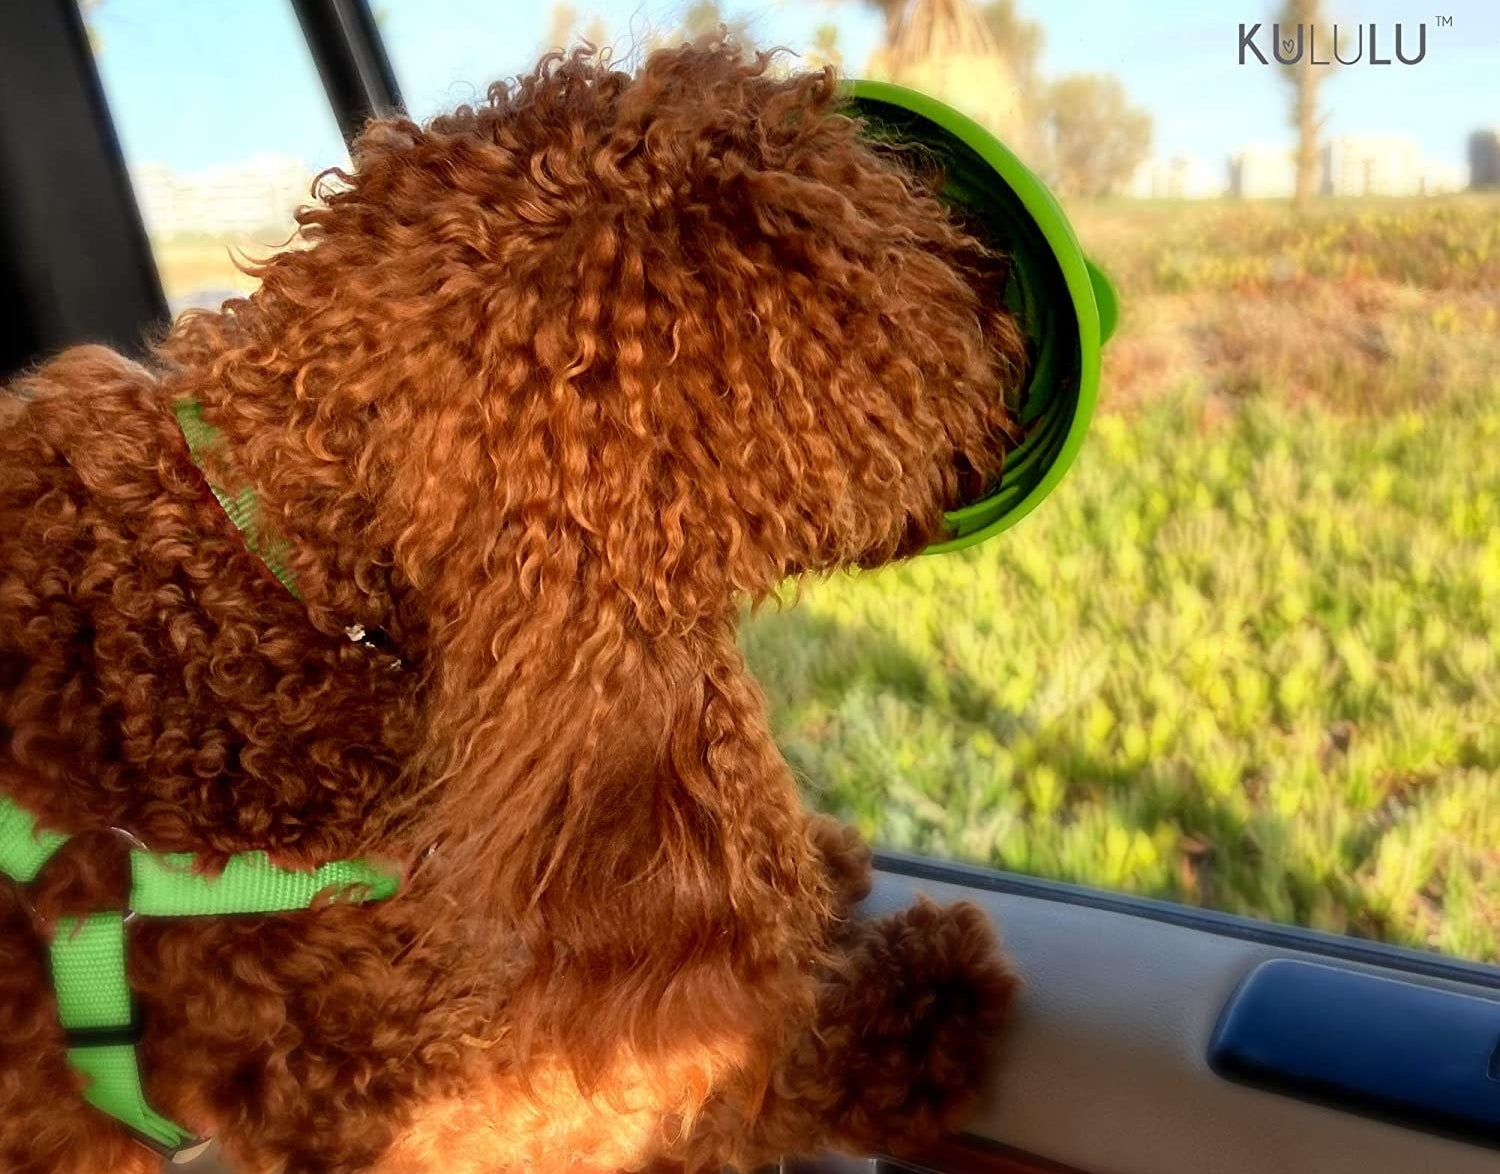 Green textured bowl suctioned to car window with dog licking it